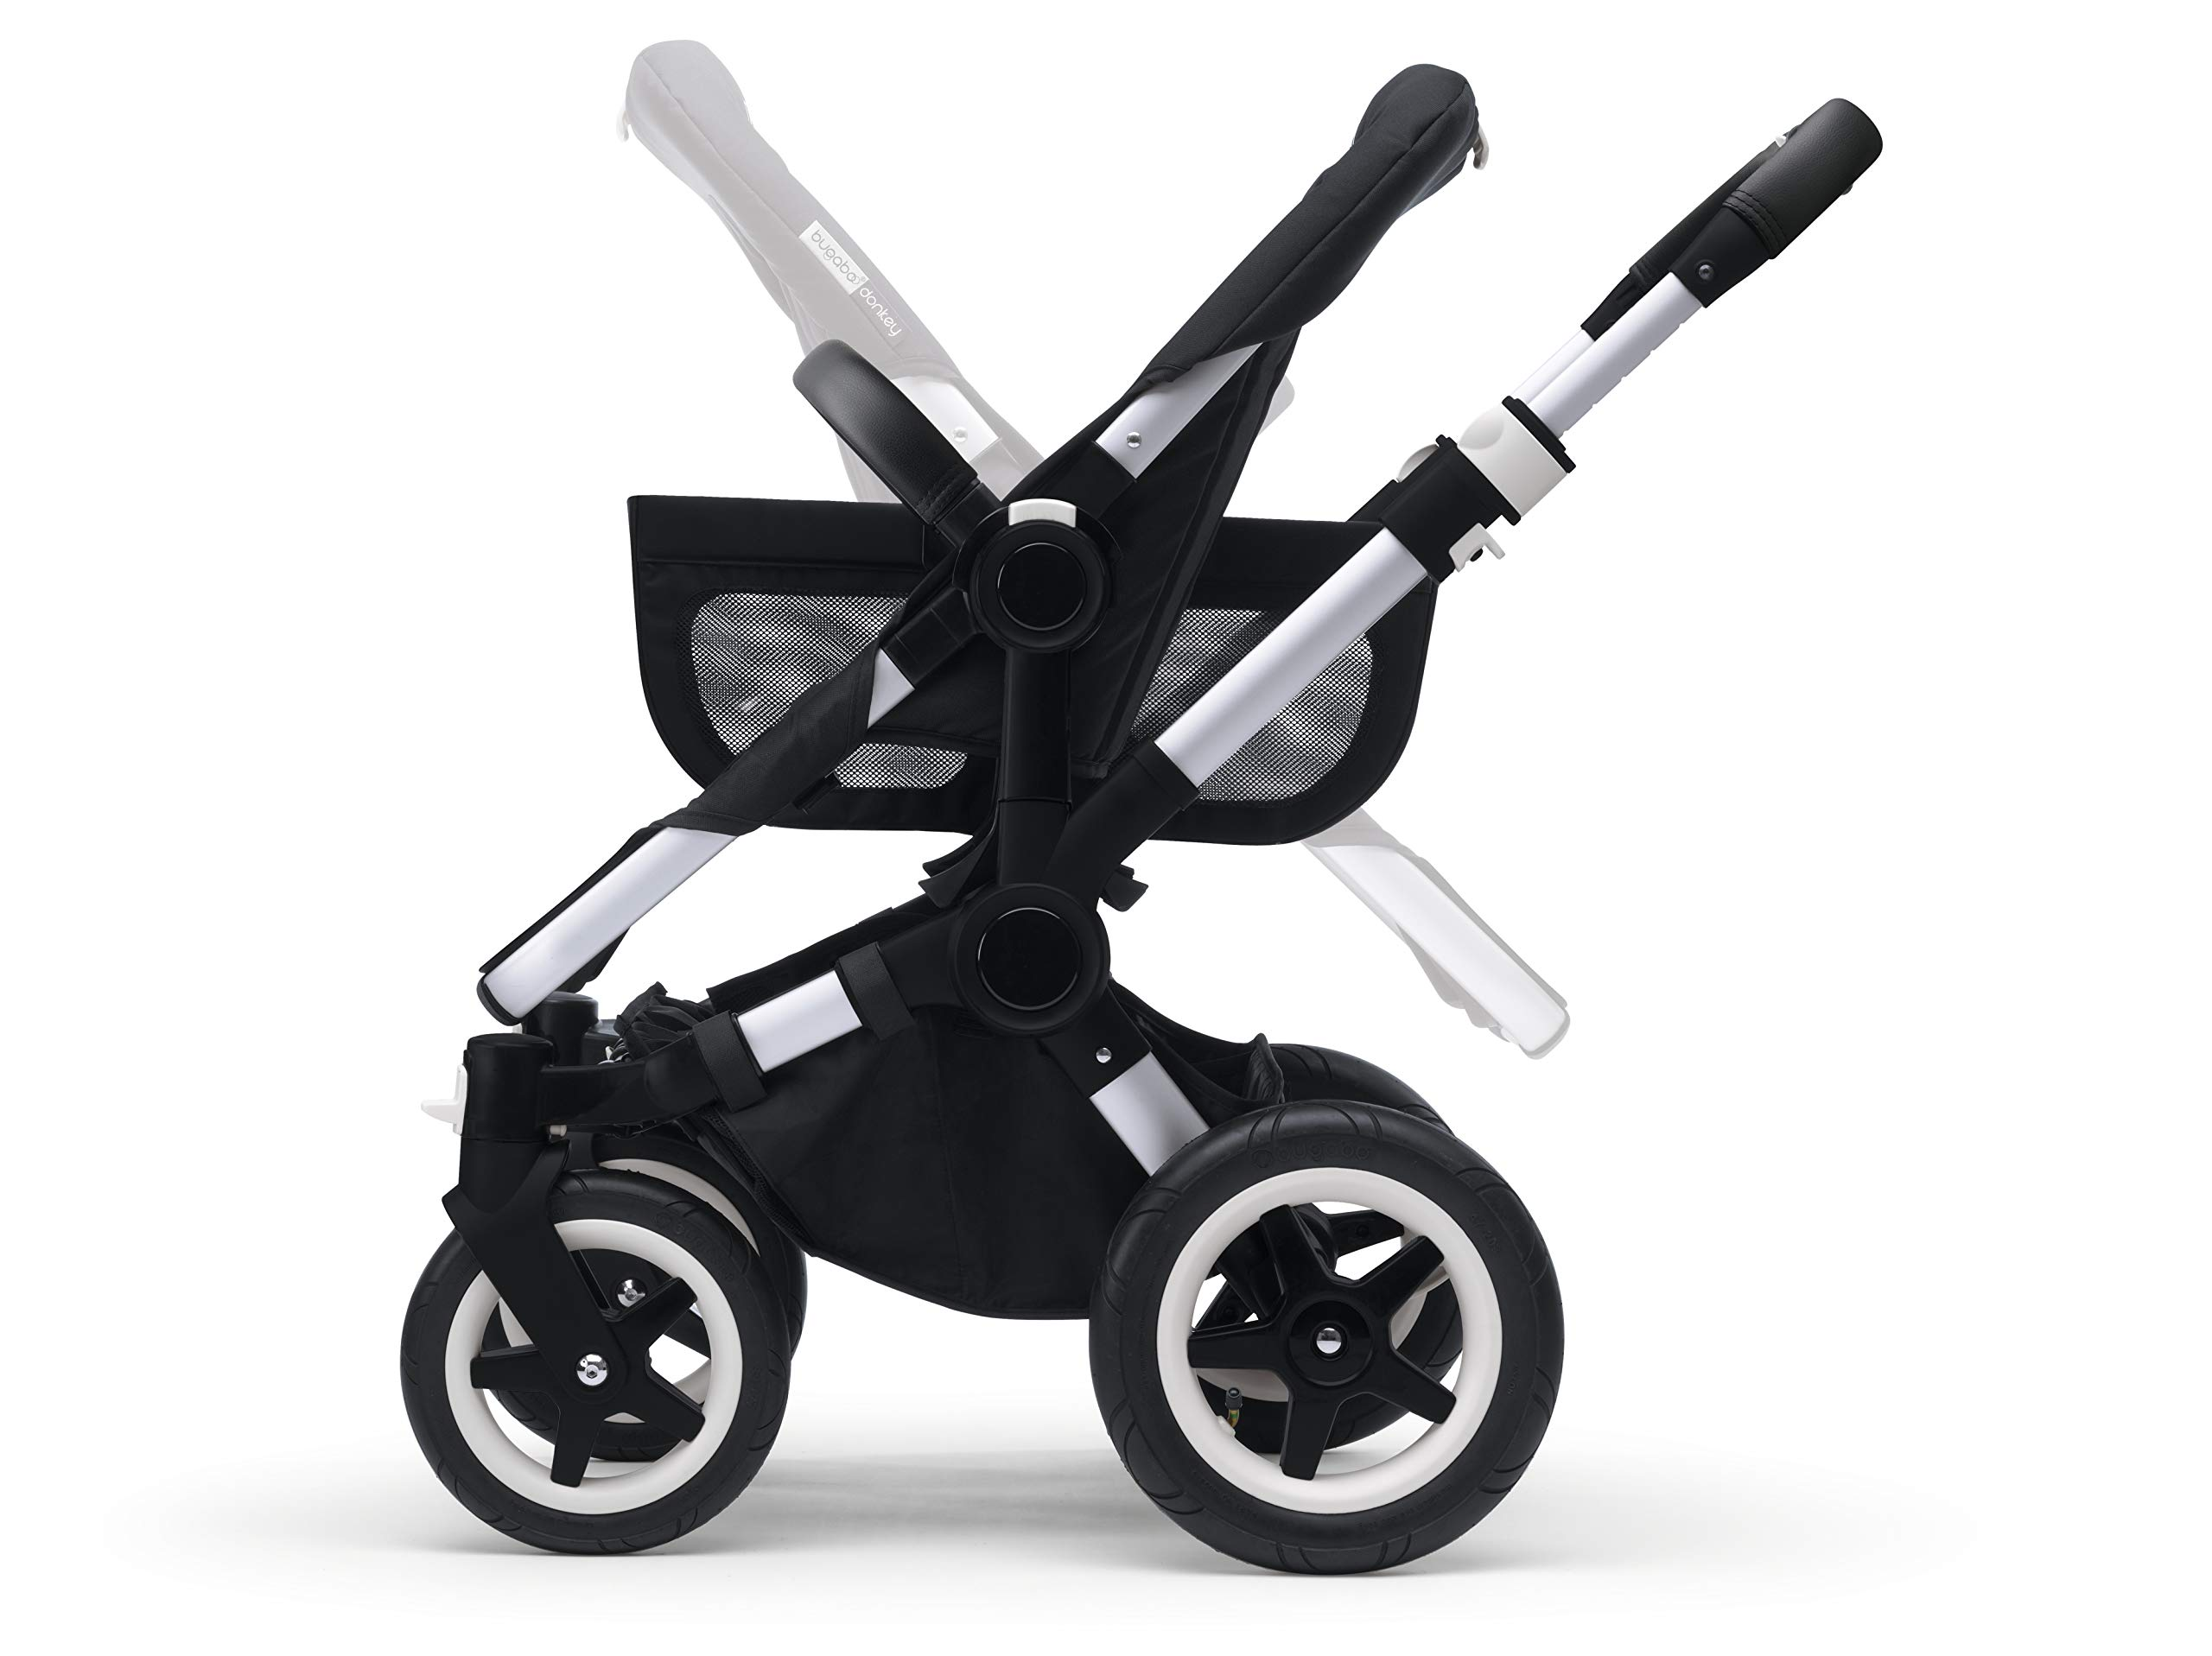 Bugaboo Donkey 2 Mono, 2 In 1 Pram and Pushchair, Extends Into Double Stroller, Black/Soft Pink Bugaboo The name donkey says it all; it's the bugaboo pushchair with the most storage space The bugaboo donkey2 mono can be easily extended to create even more space in the expandable side luggage basket & underseat basket Use extension sets to convert the bugaboo donkey2 mono into a duo or twin pushchair in just three clicks (extension sets sold separately) 5